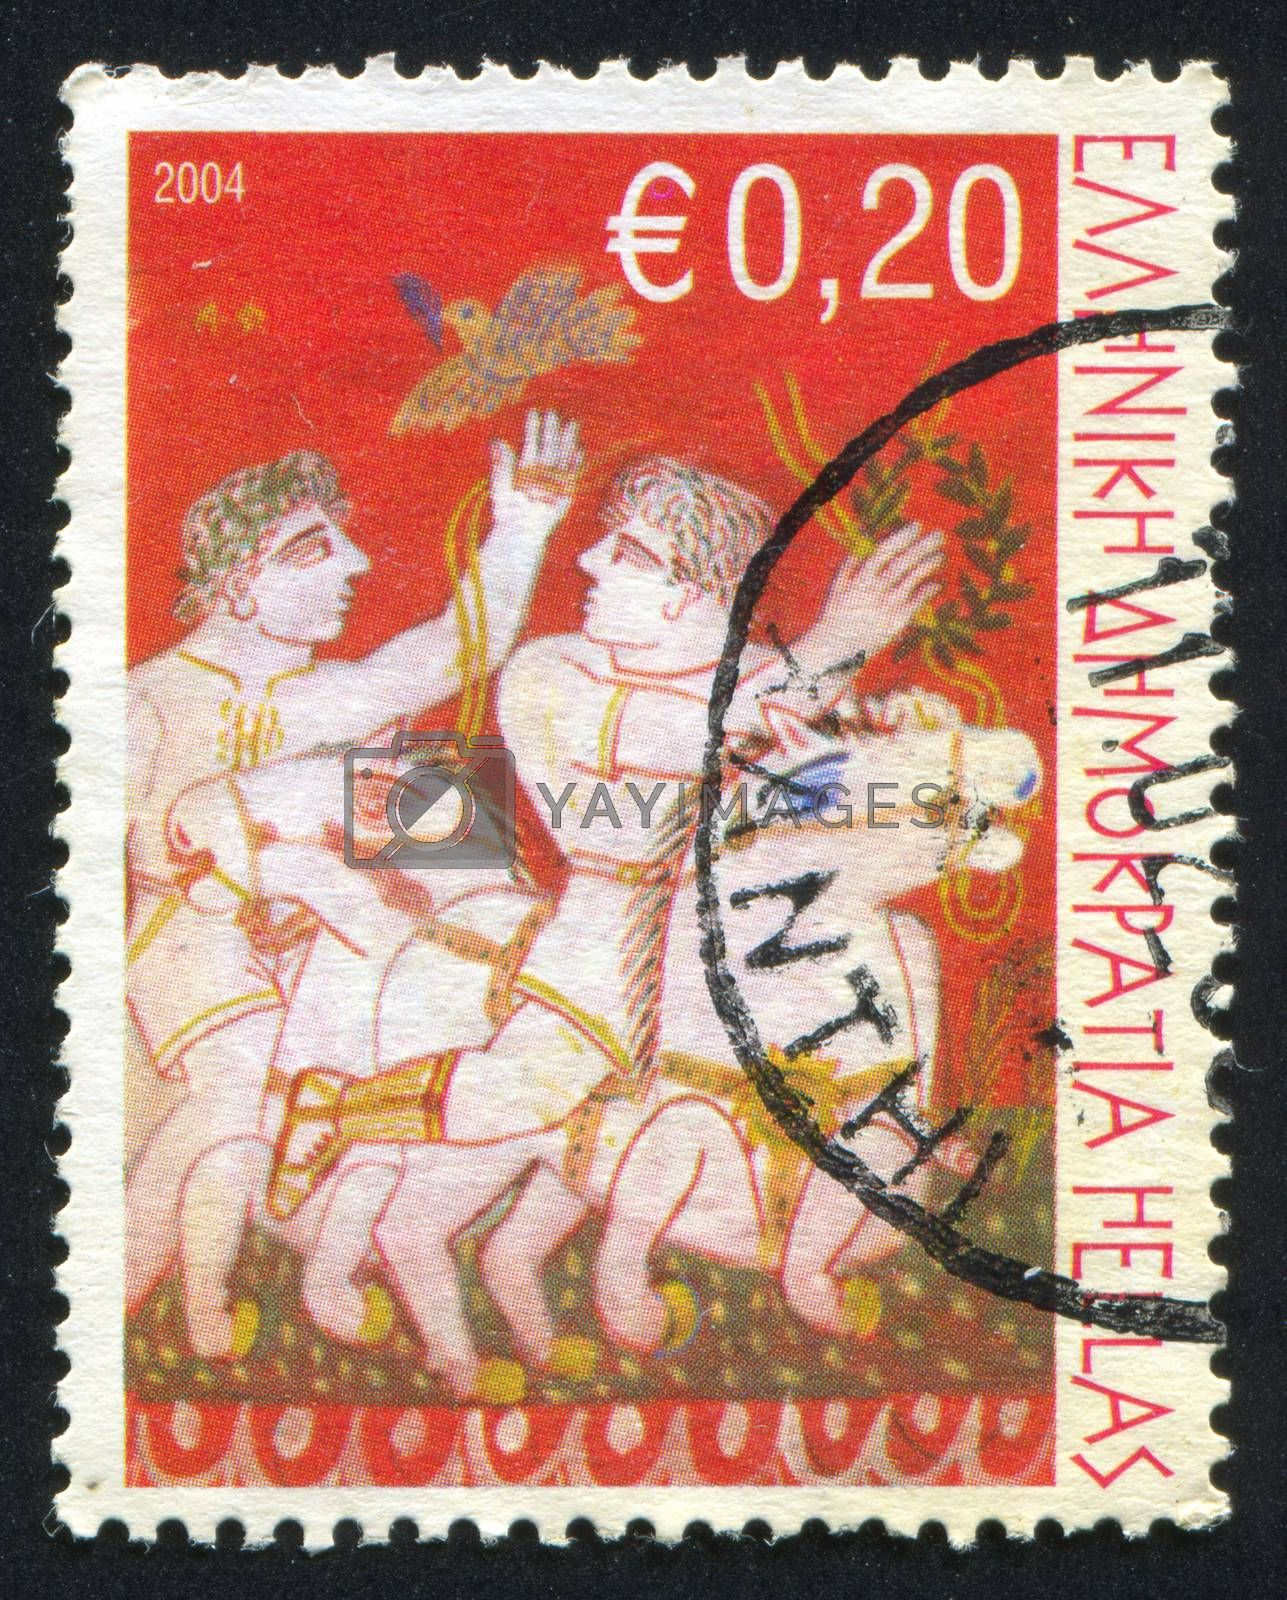 GREECE - CIRCA 2004: stamp printed by Greece, shows Horses and riders, circa 2004